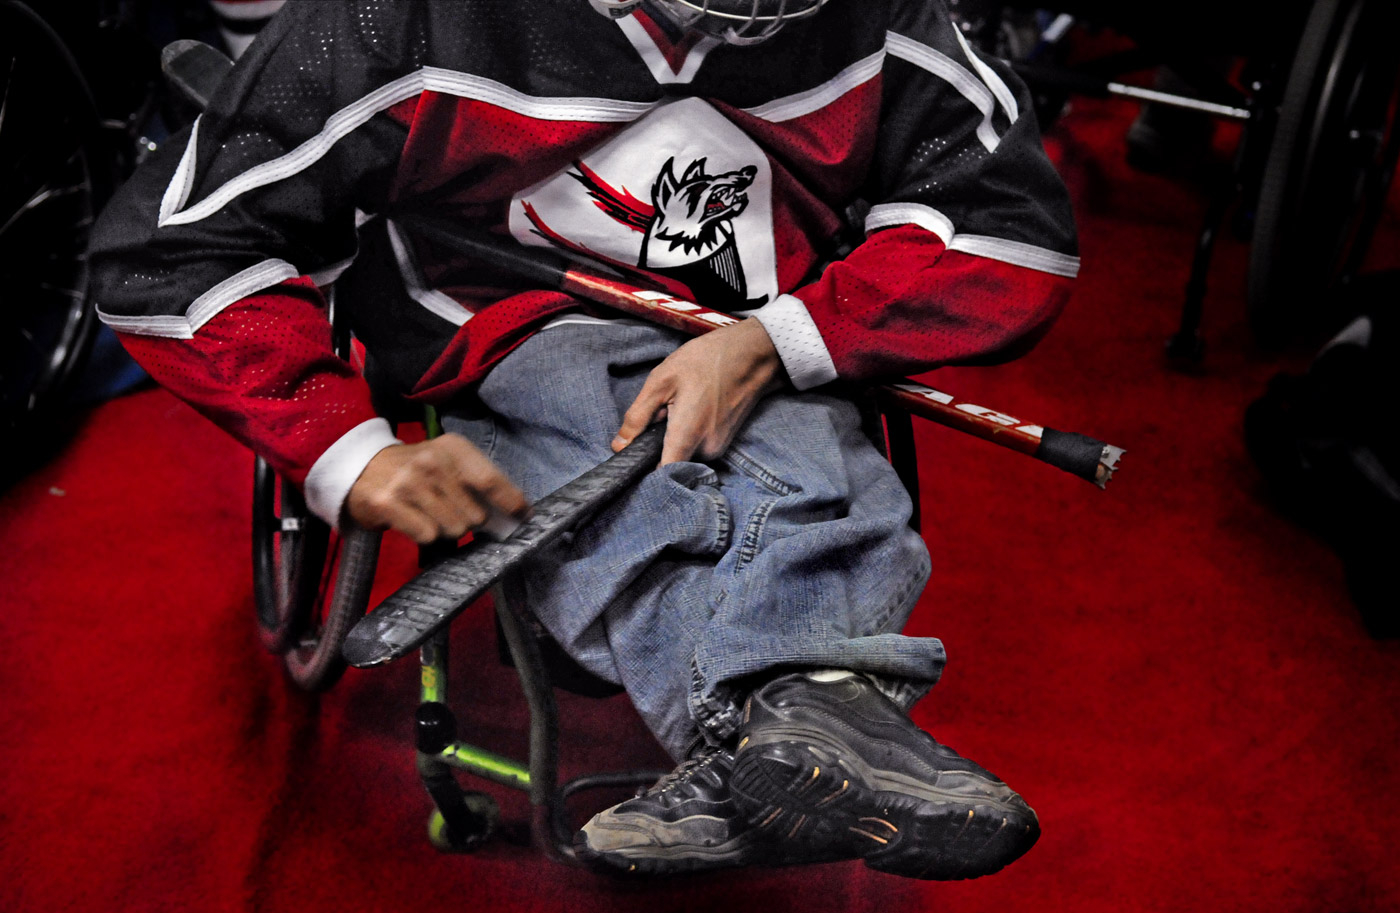 Robert Jenner chalks up his hockey stick before a match at the XL Center in Hartford. The team was playing against local television and area {quote}celebrities.{quote}